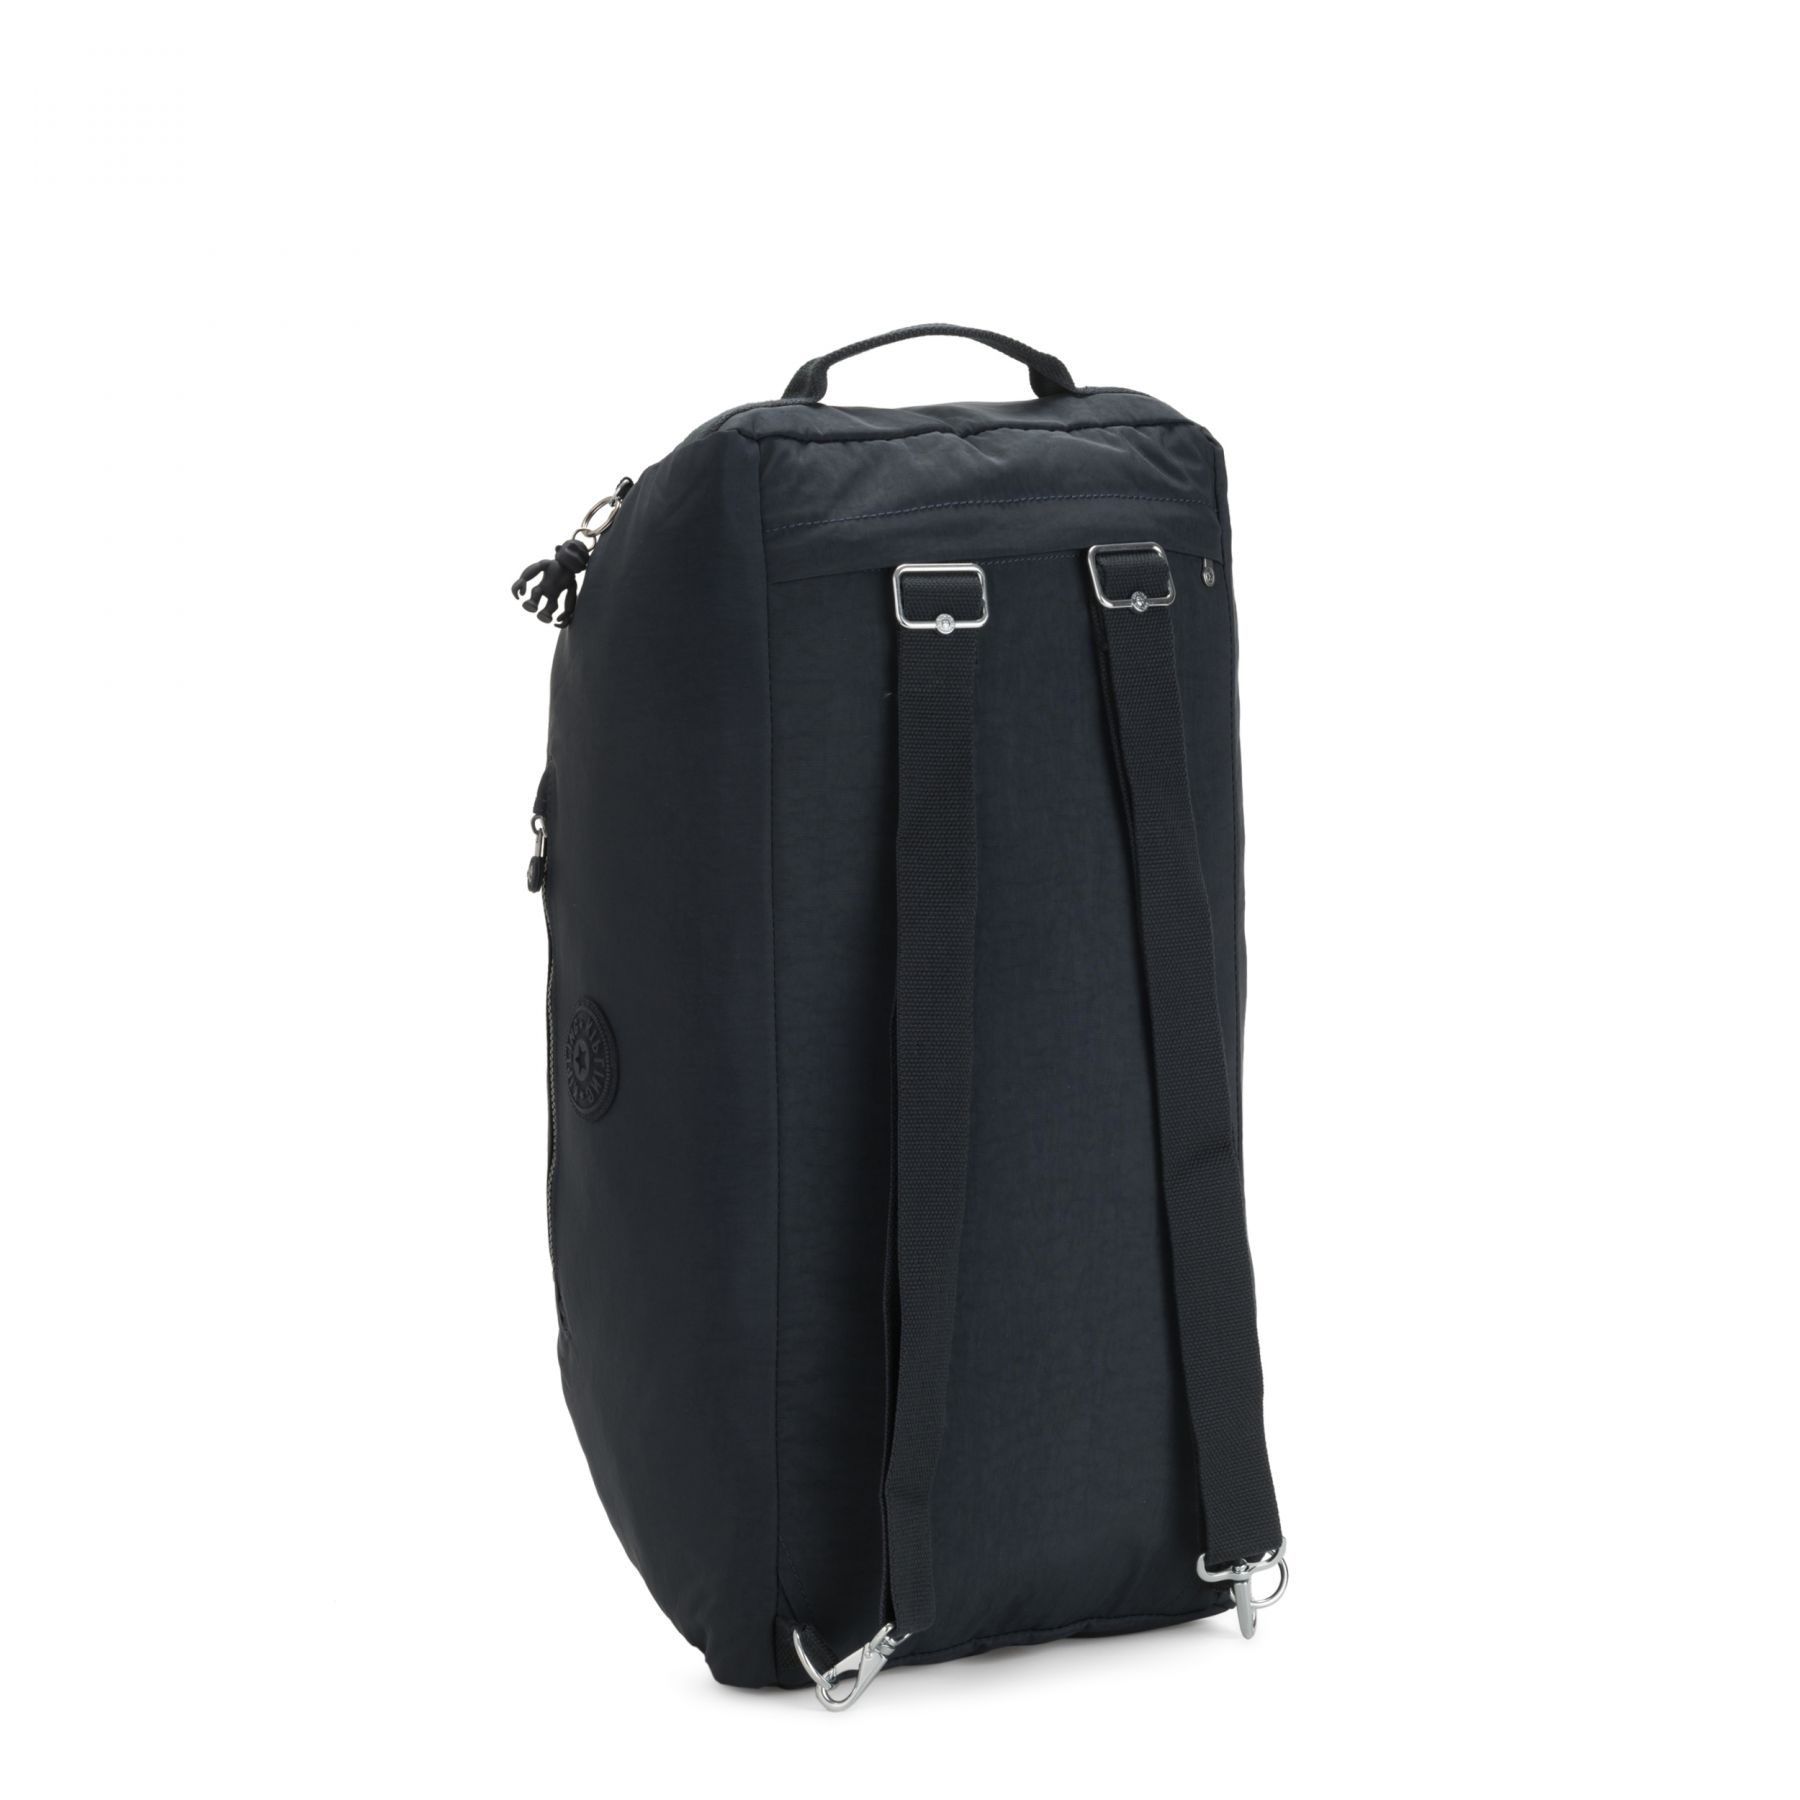 DEVIN Latest Luggage by Kipling - Back view